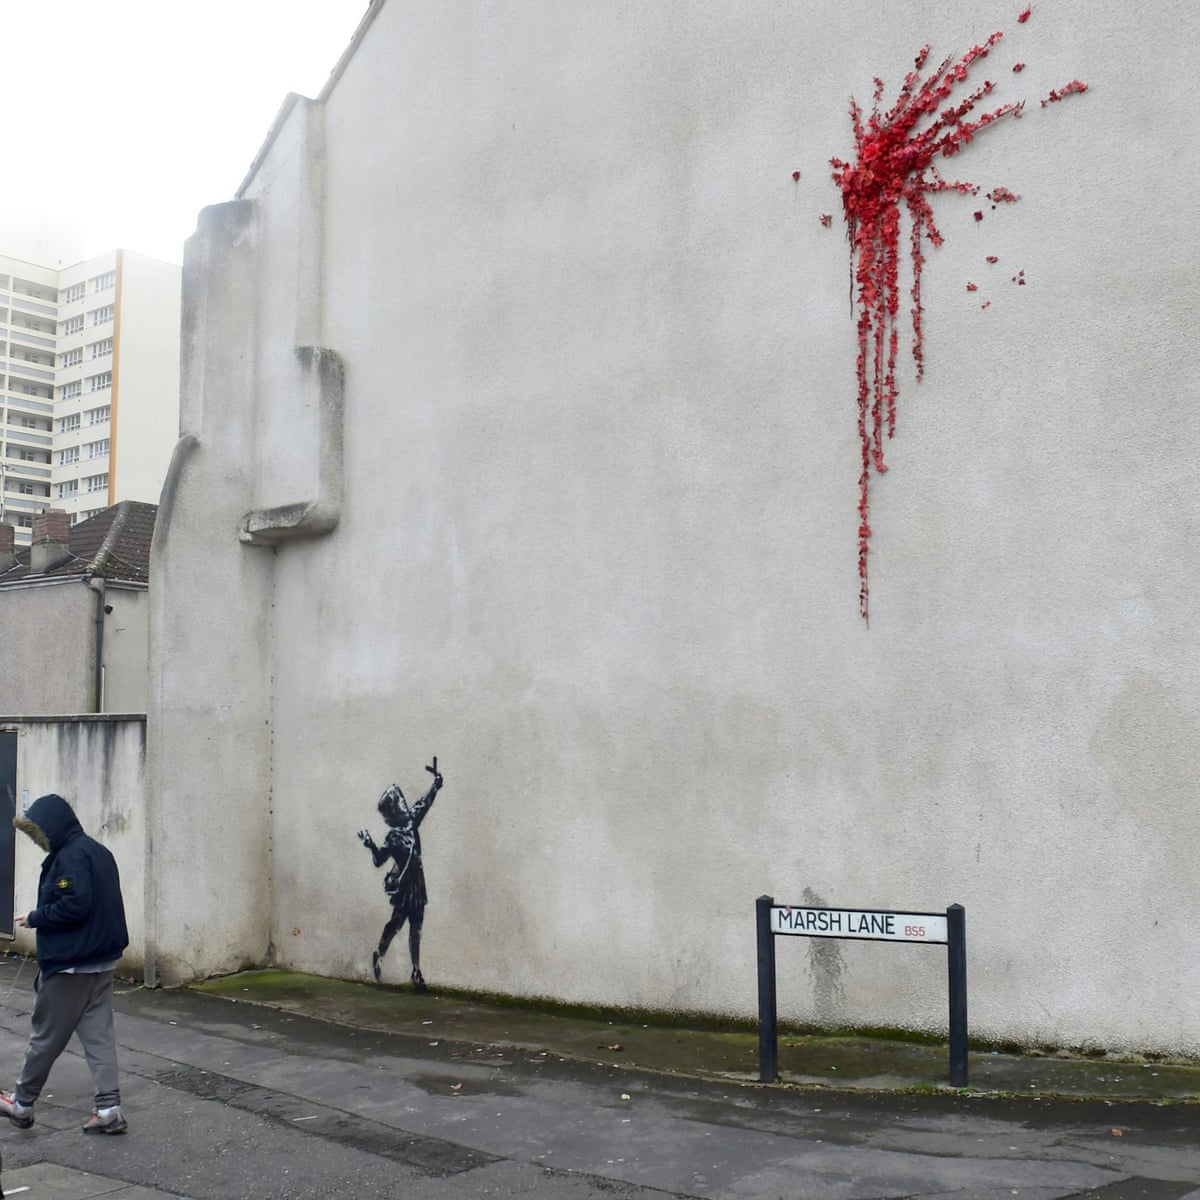 Valentine's Day art in Bristol confirmed by Banksy as his work ...